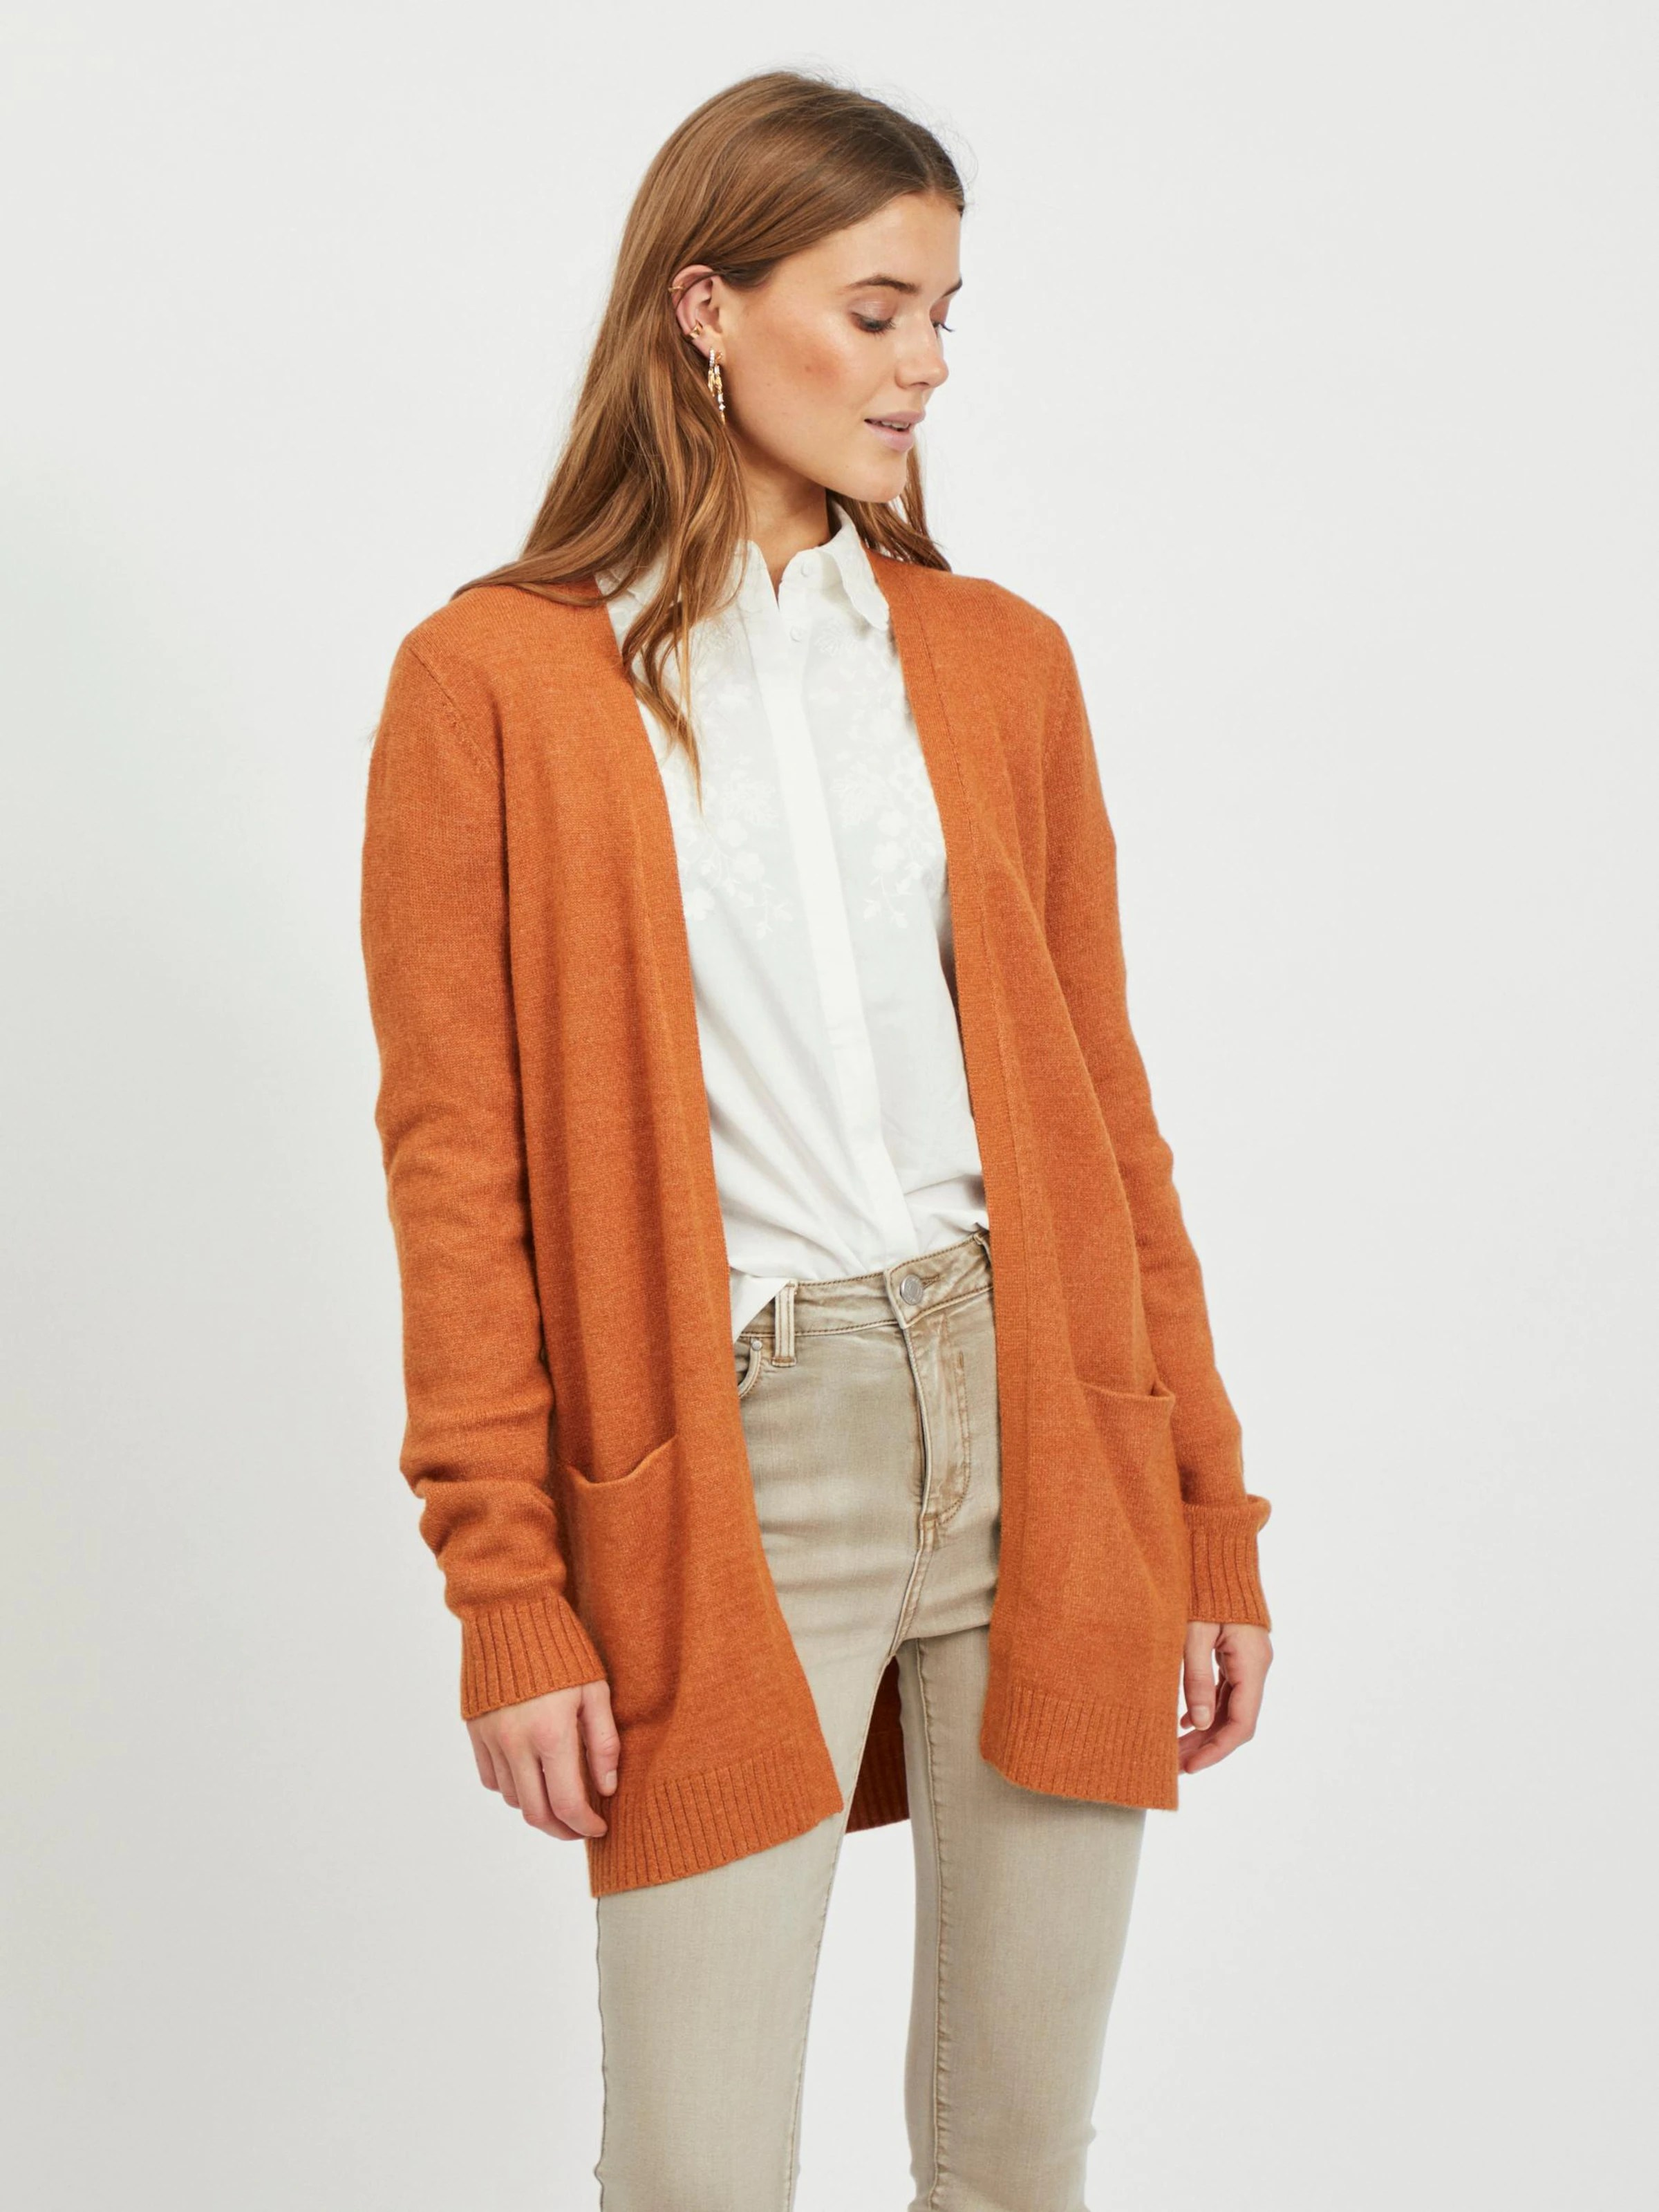 Knit Cardigan Orange For Women Buy Online About You